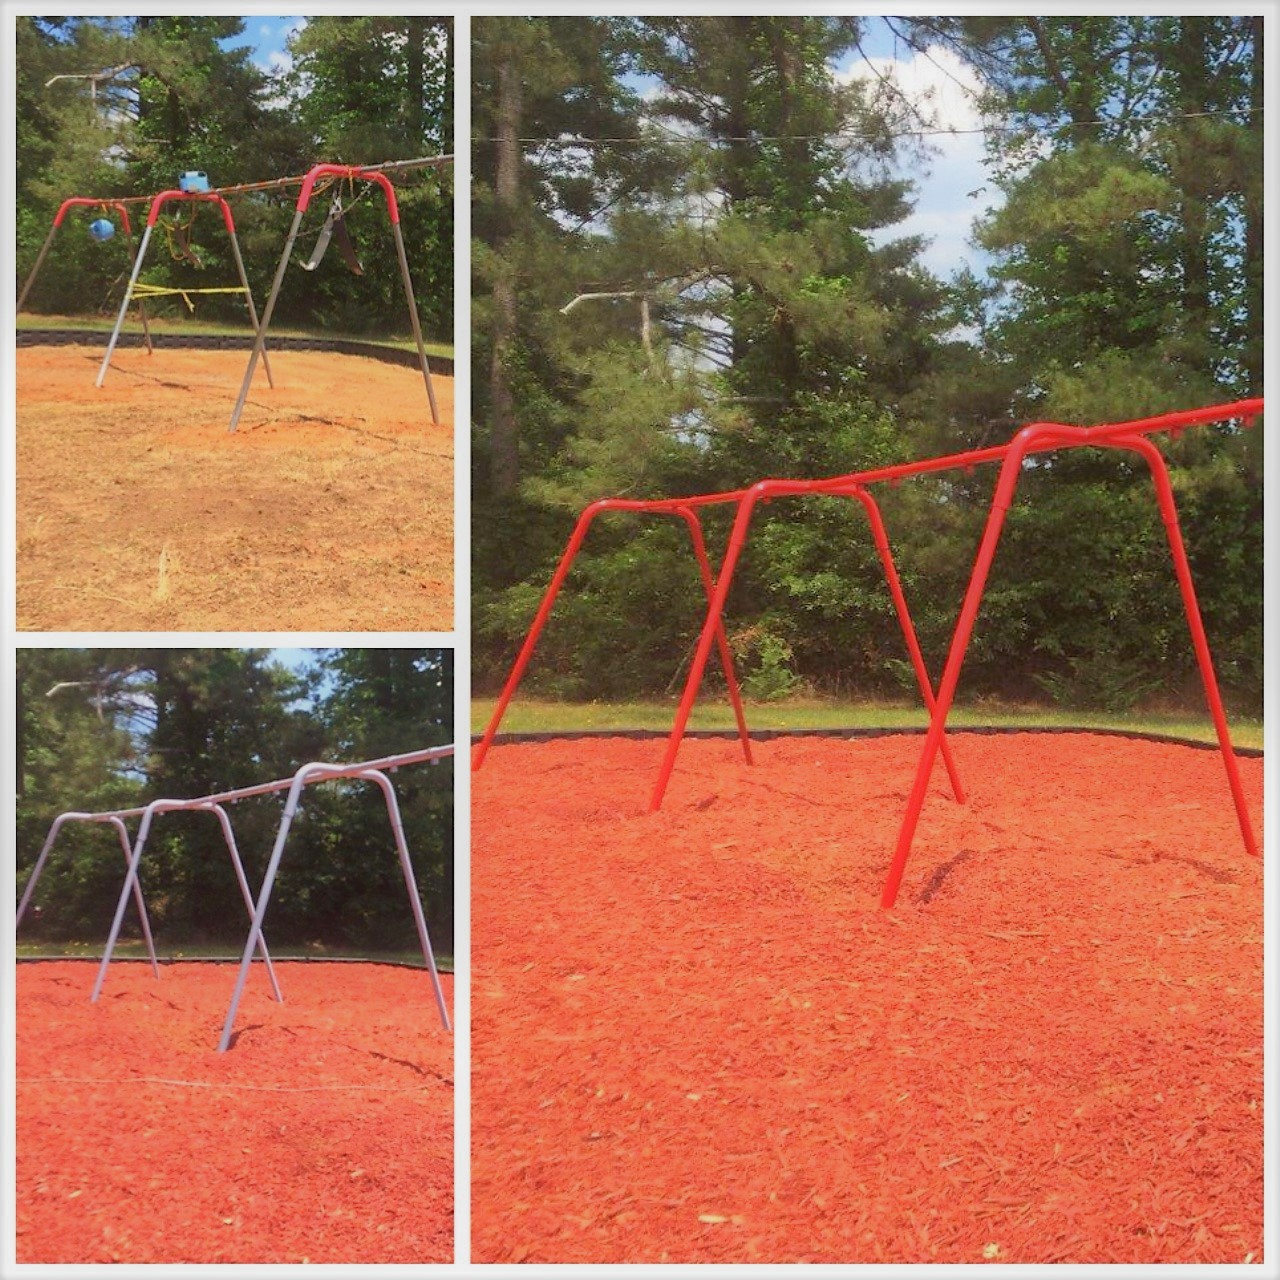 Swingset - Before, During and After 2.jpg